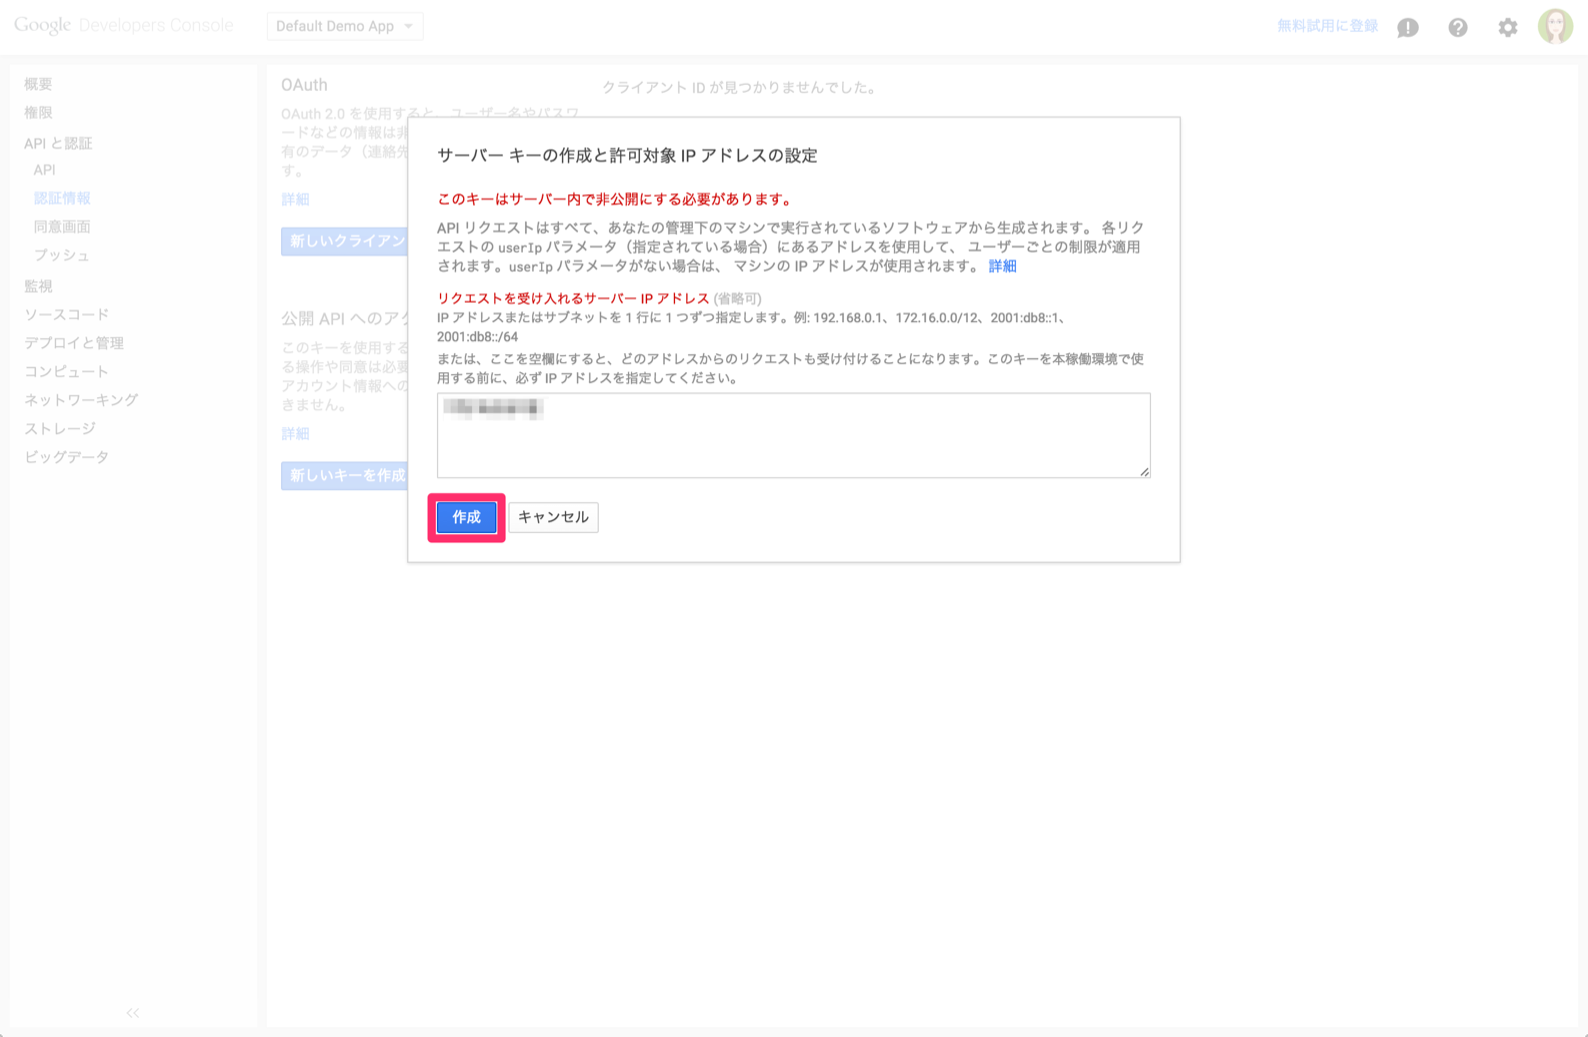 認証情報_-_Default_Demo_App3.png